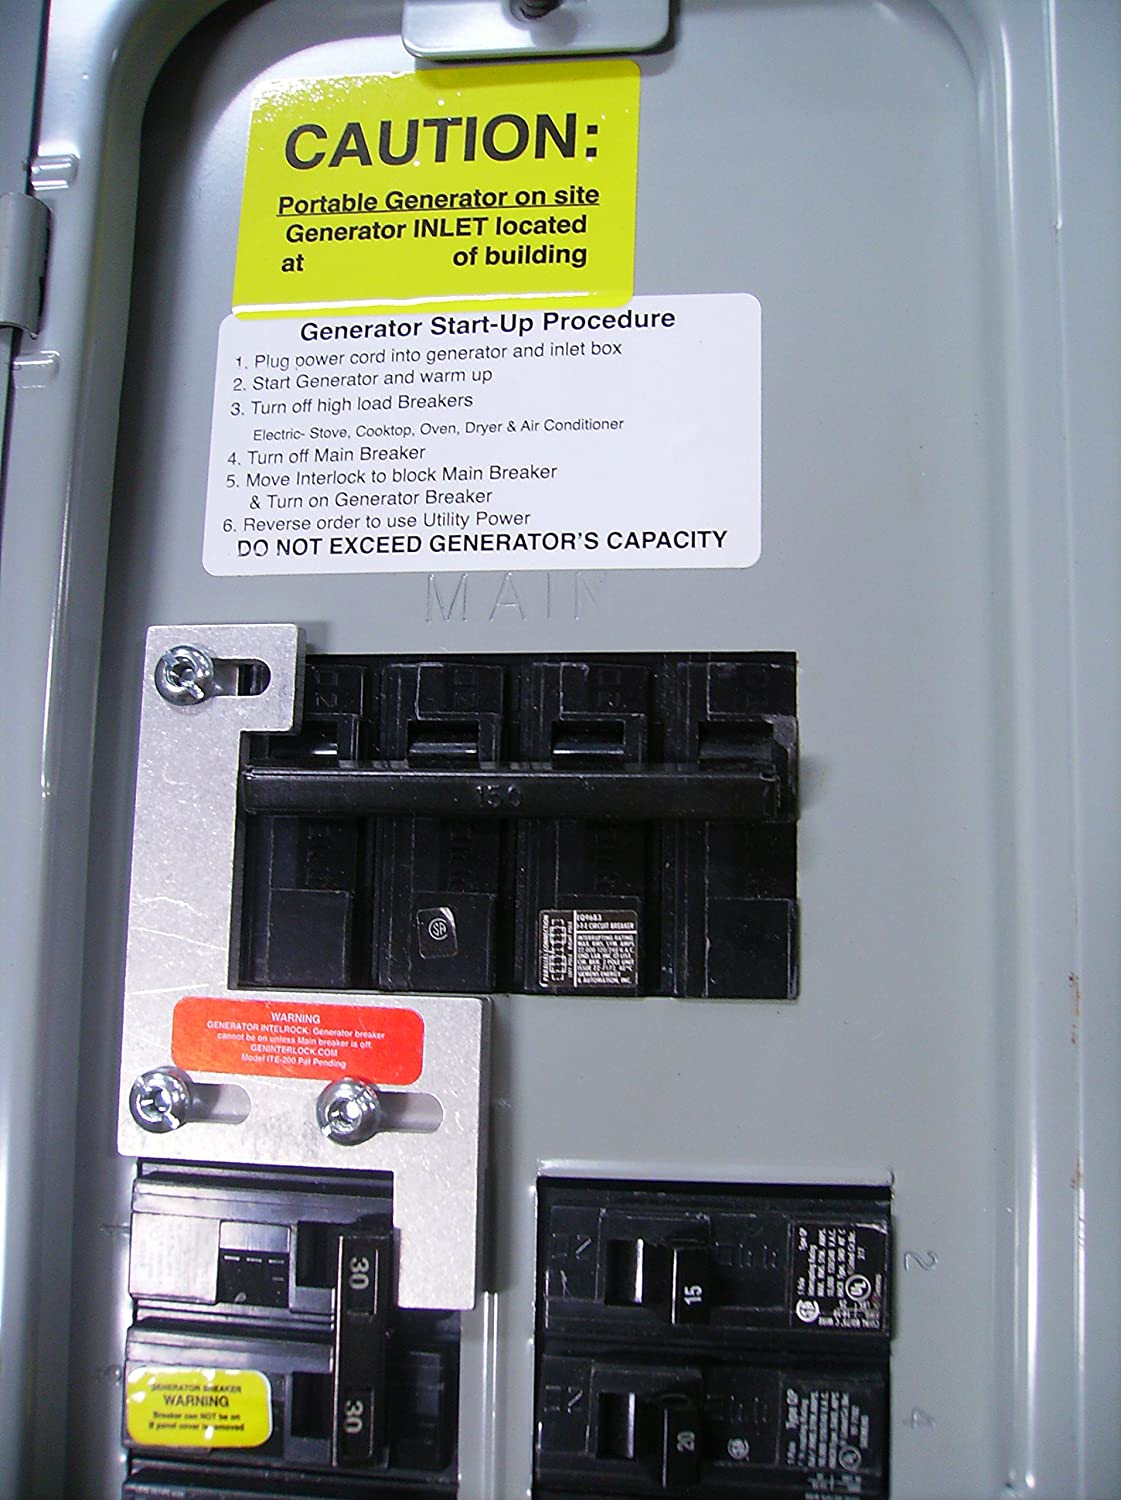 Ite 200a Gould Murray Siemens Or Thomas Betts Generator Installation With A Pb30 Inlet On Cutler Hammer Main Circuit Breaker Interlock Kit 150 Amp 200 Panels